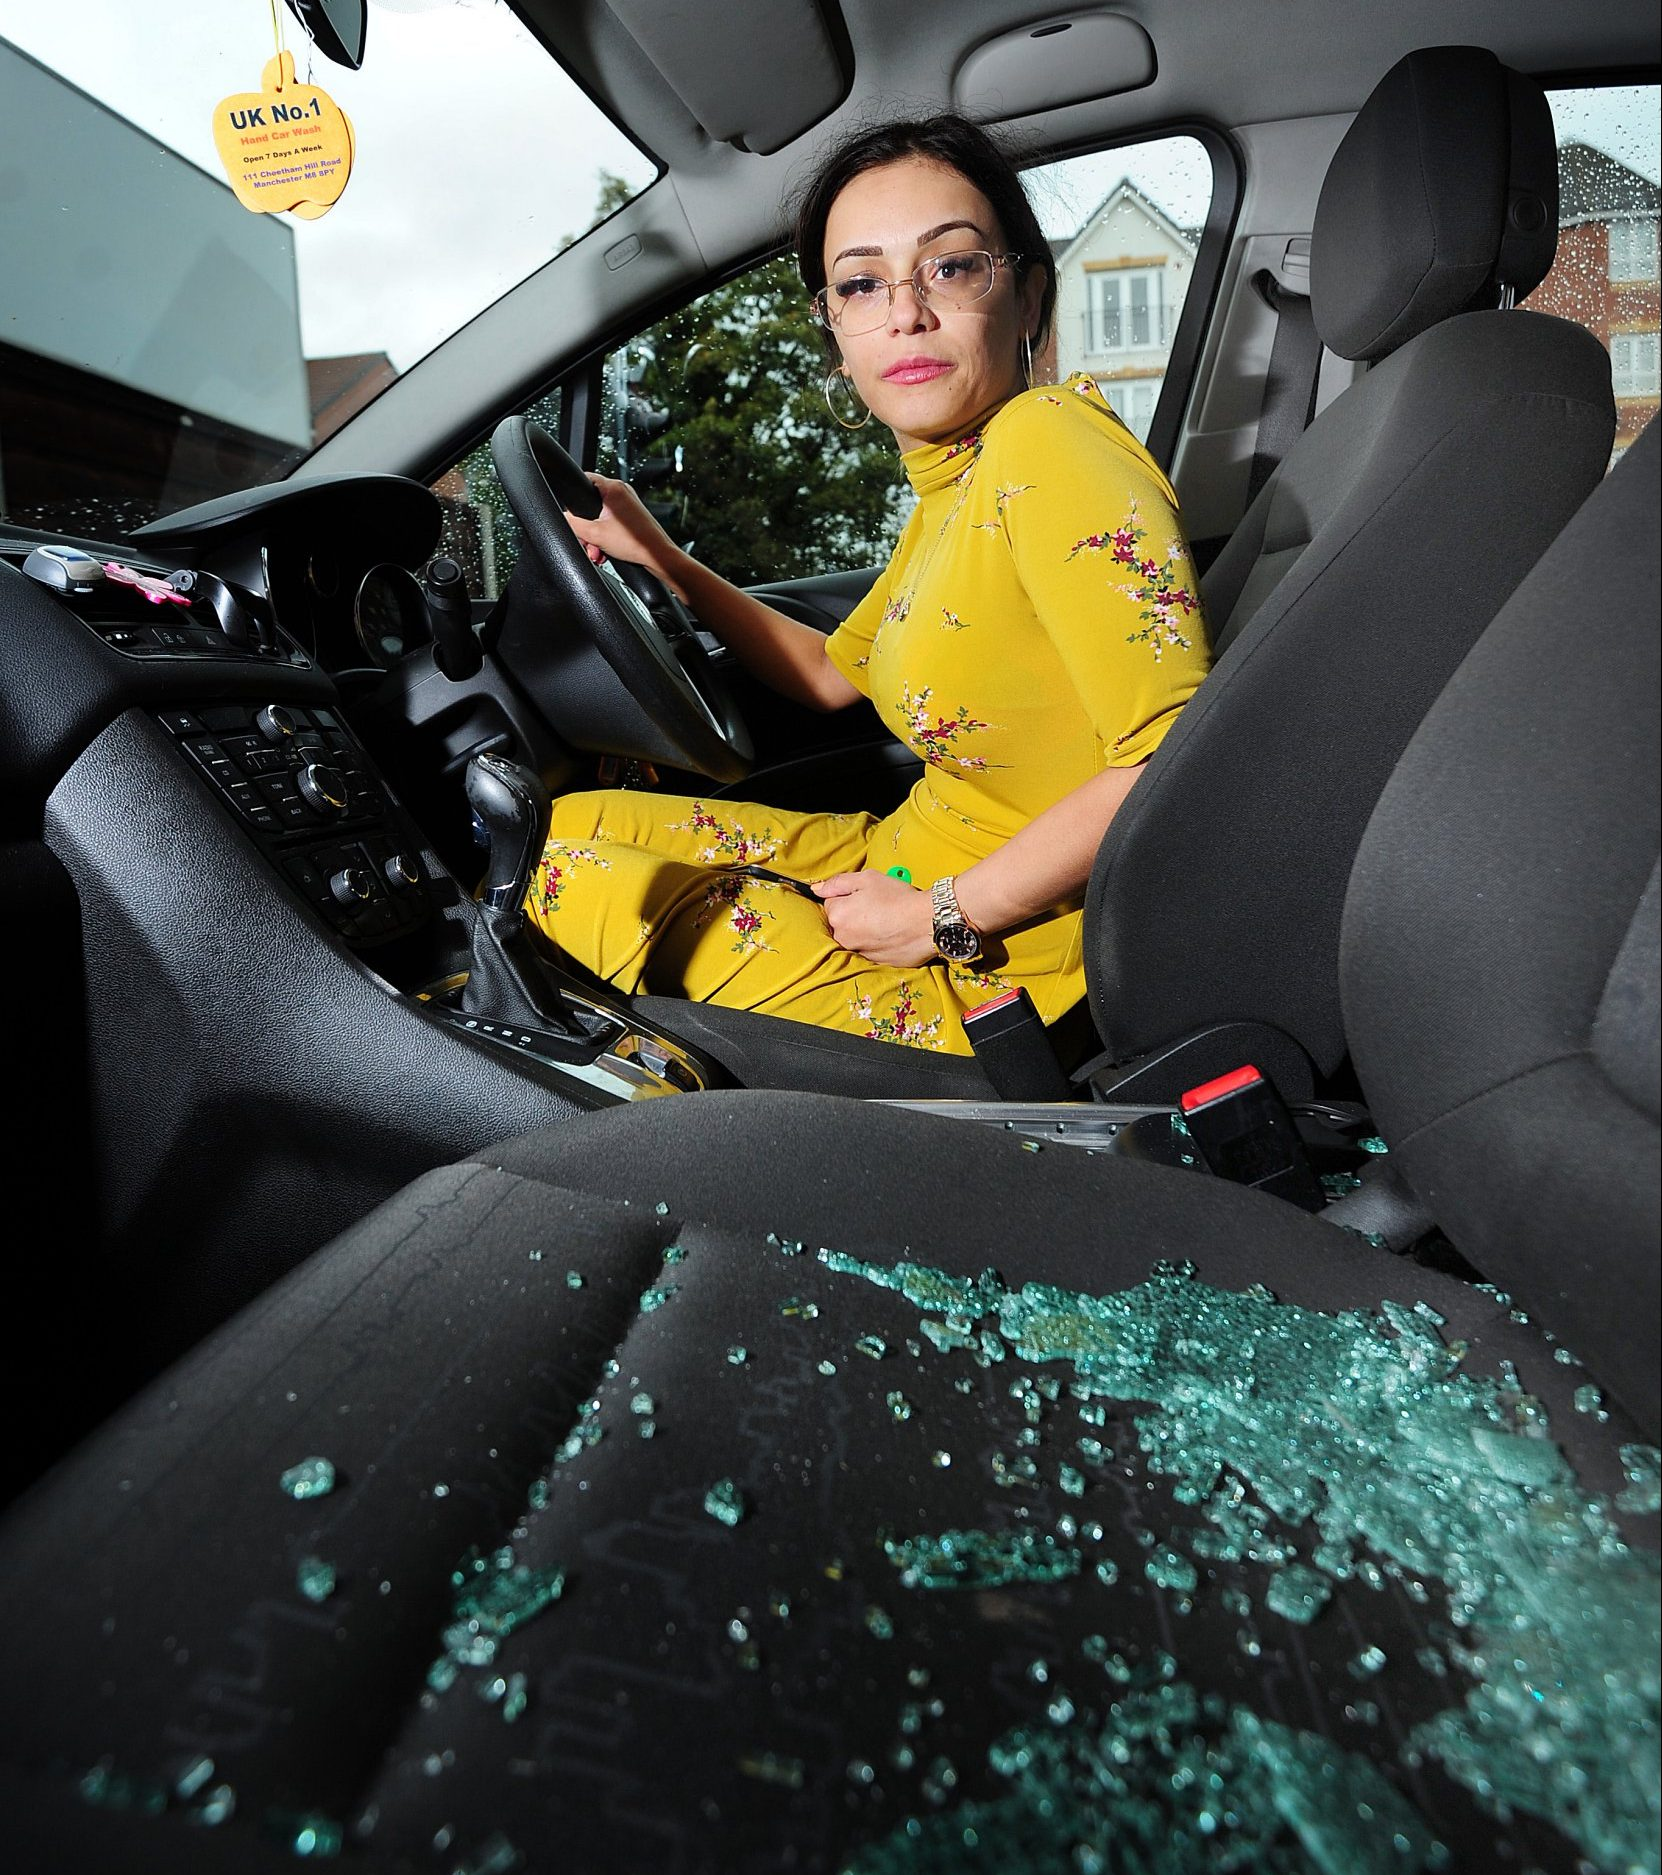 Claudia Iorga had her car window smashed and knife held to her throat as she waited at traffic lights in Cheetham Hill, Manchester 12 October 2018 Credit: MEN Media